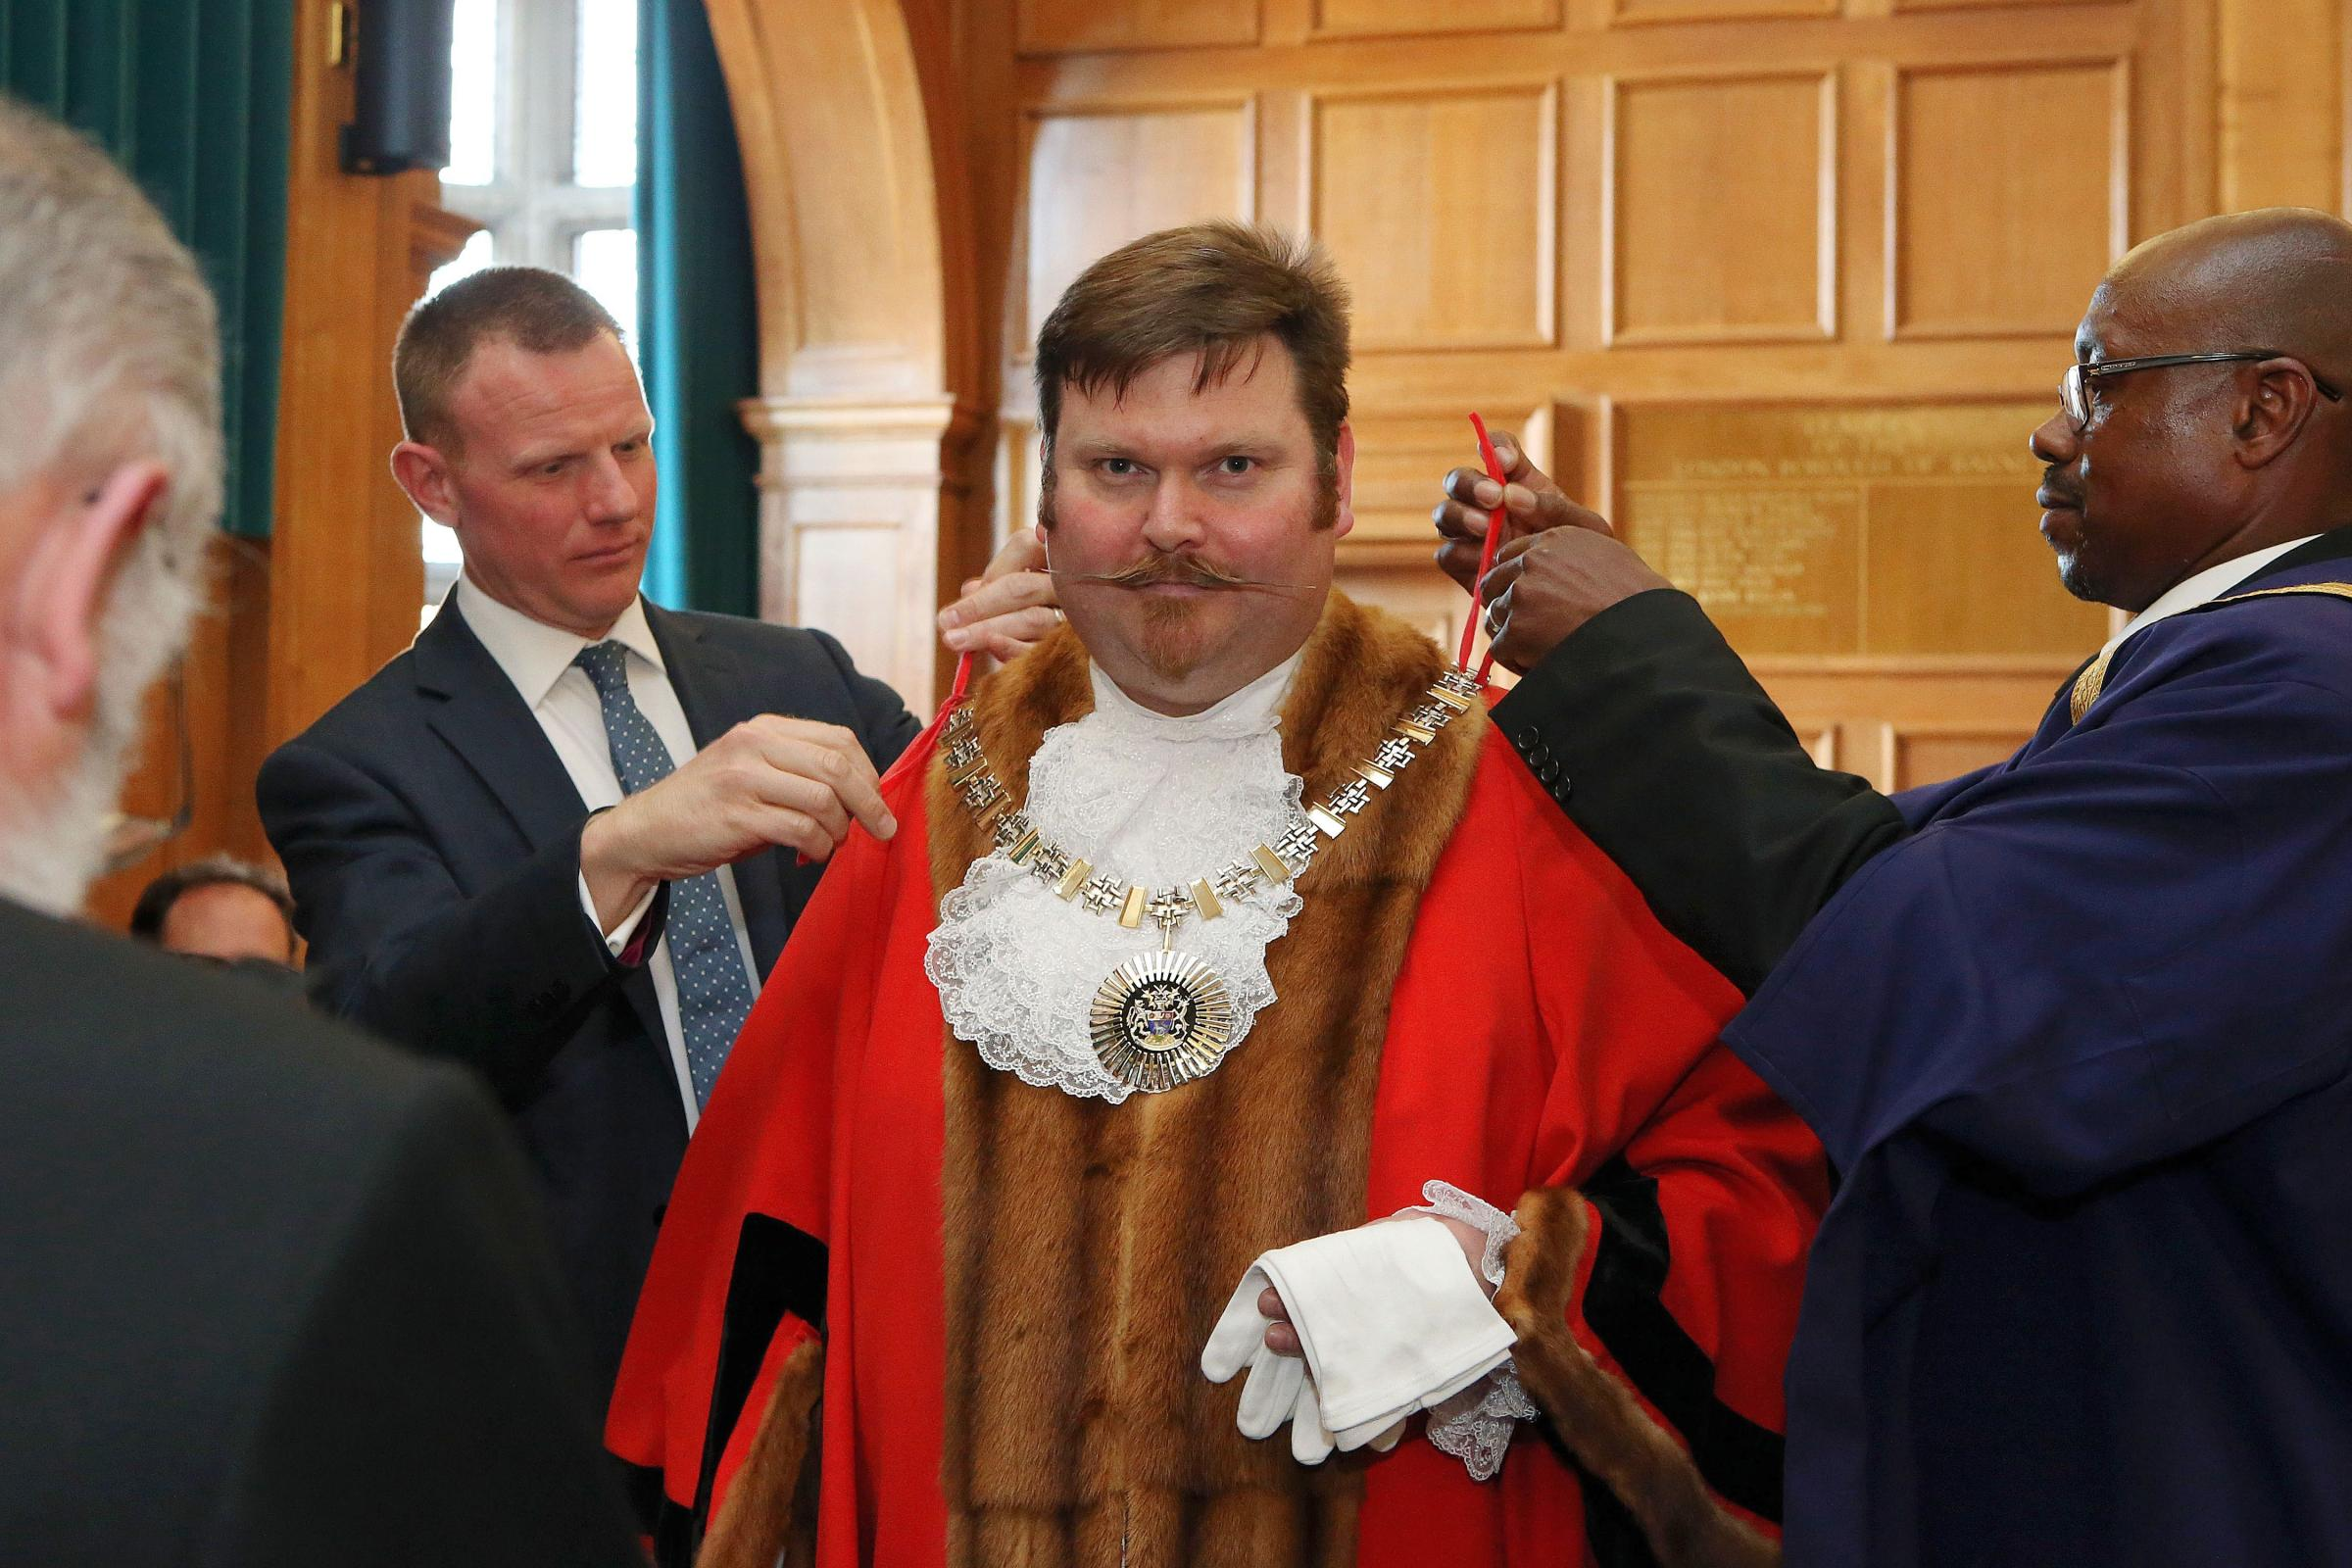 New mayor cllr Reuben Thompstone